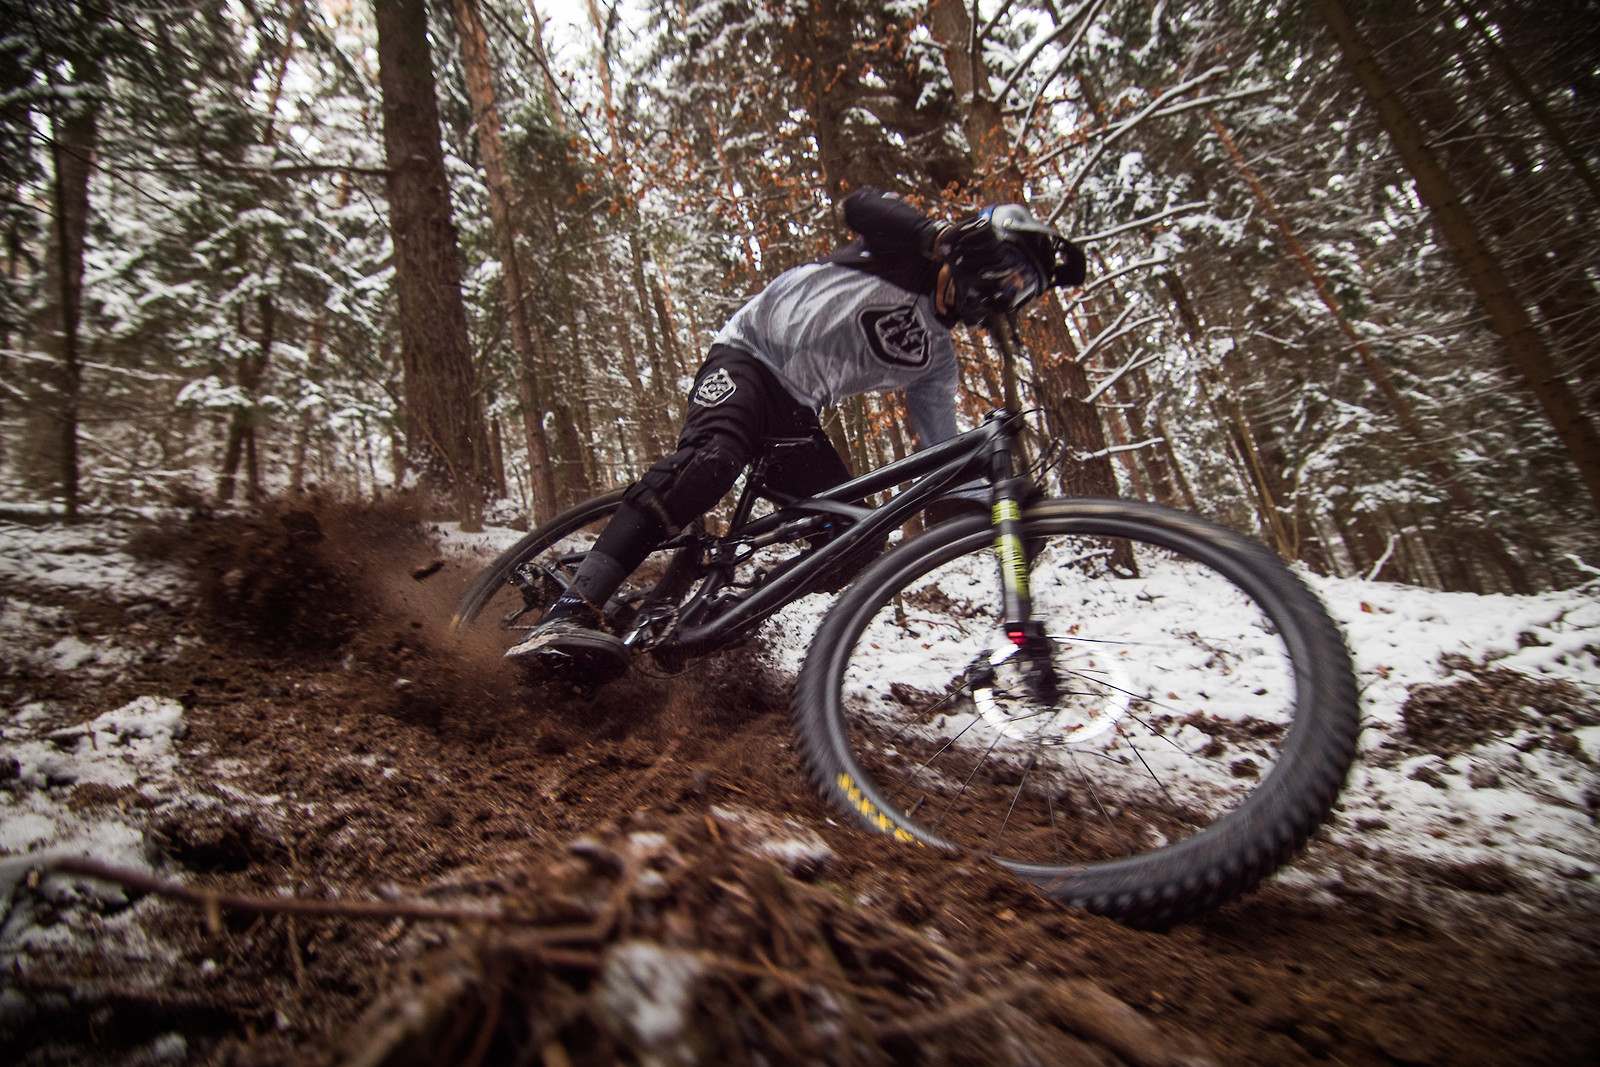 Frozen II - EWIA - Mountain Biking Pictures - Vital MTB